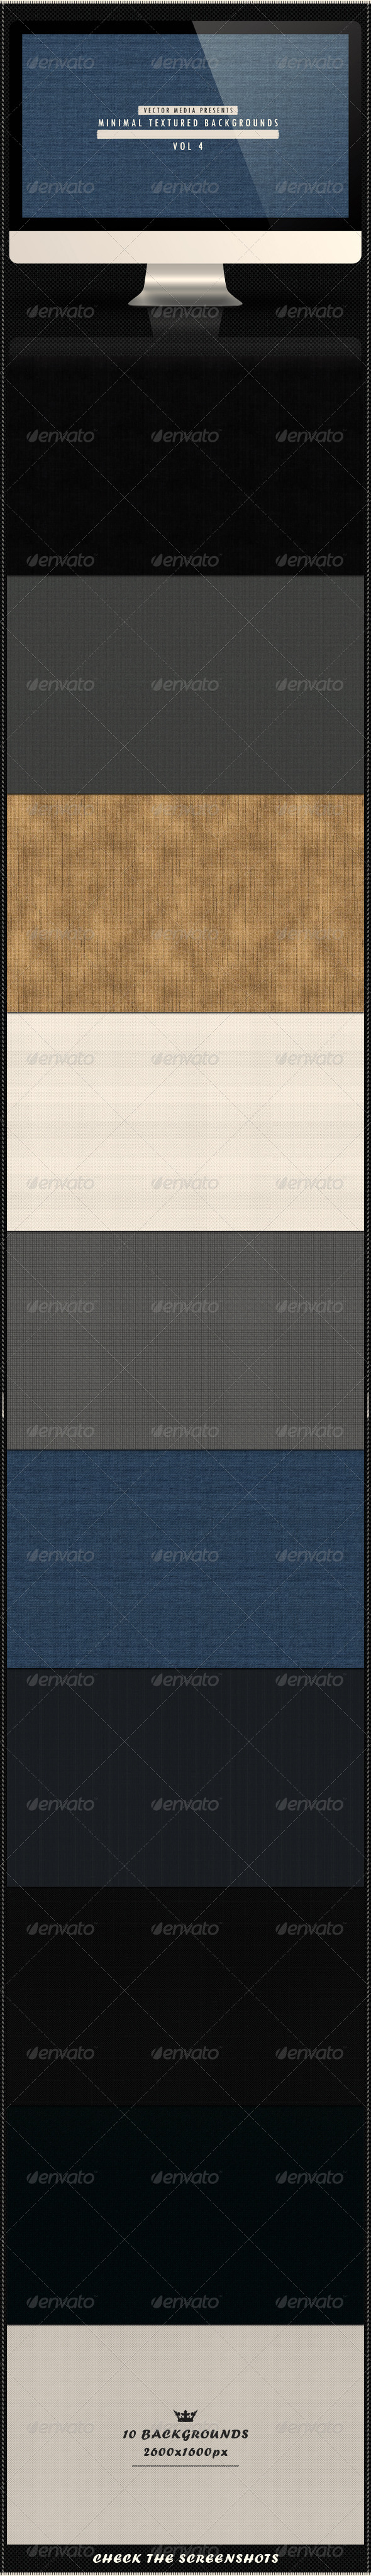 Minimal Textured Backgrounds - Vol 4 - Patterns Backgrounds